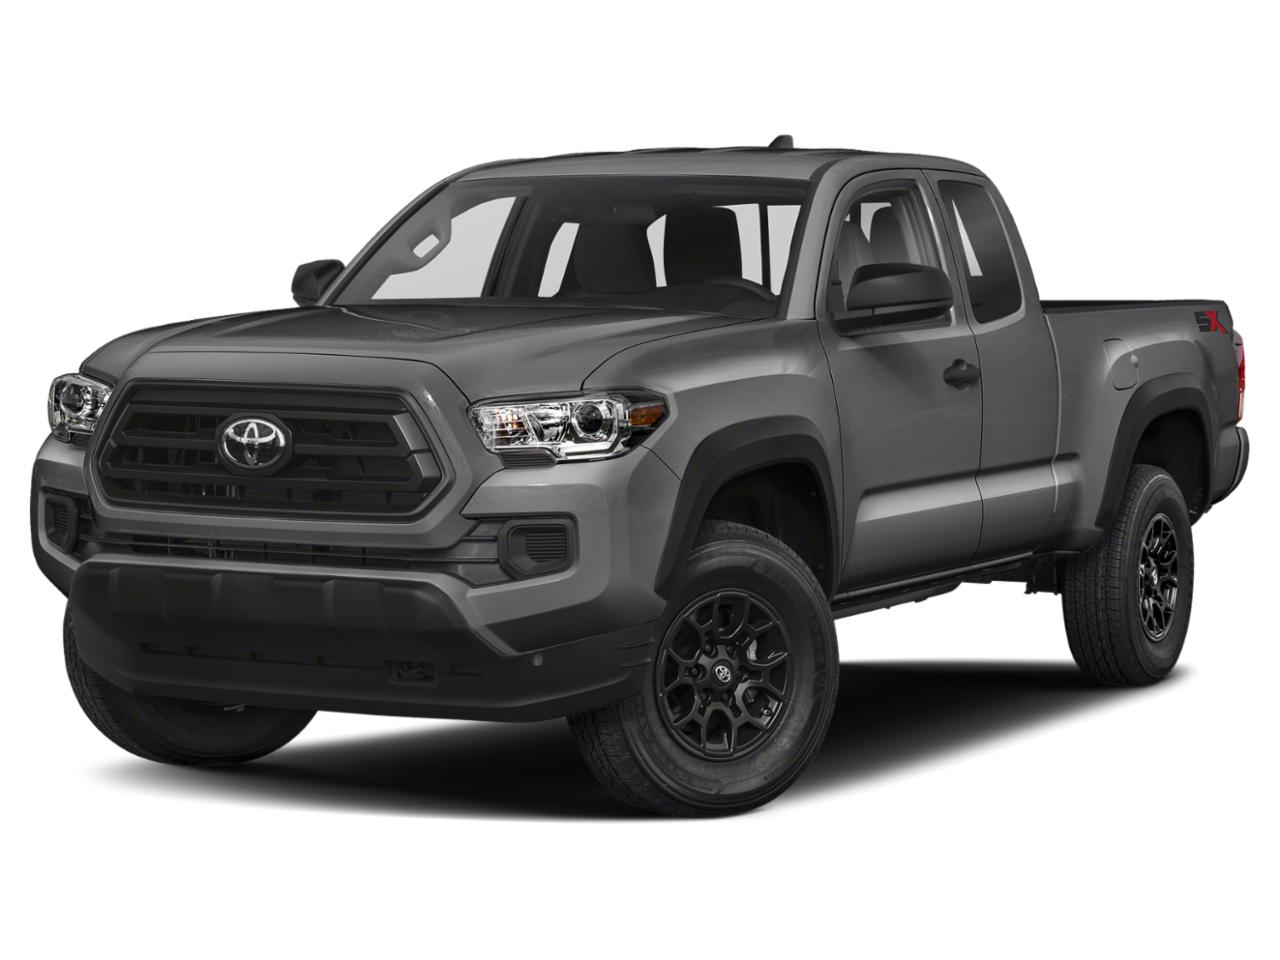 2020 Toyota Tacoma 4WD Vehicle Photo in Emporia, VA 23847